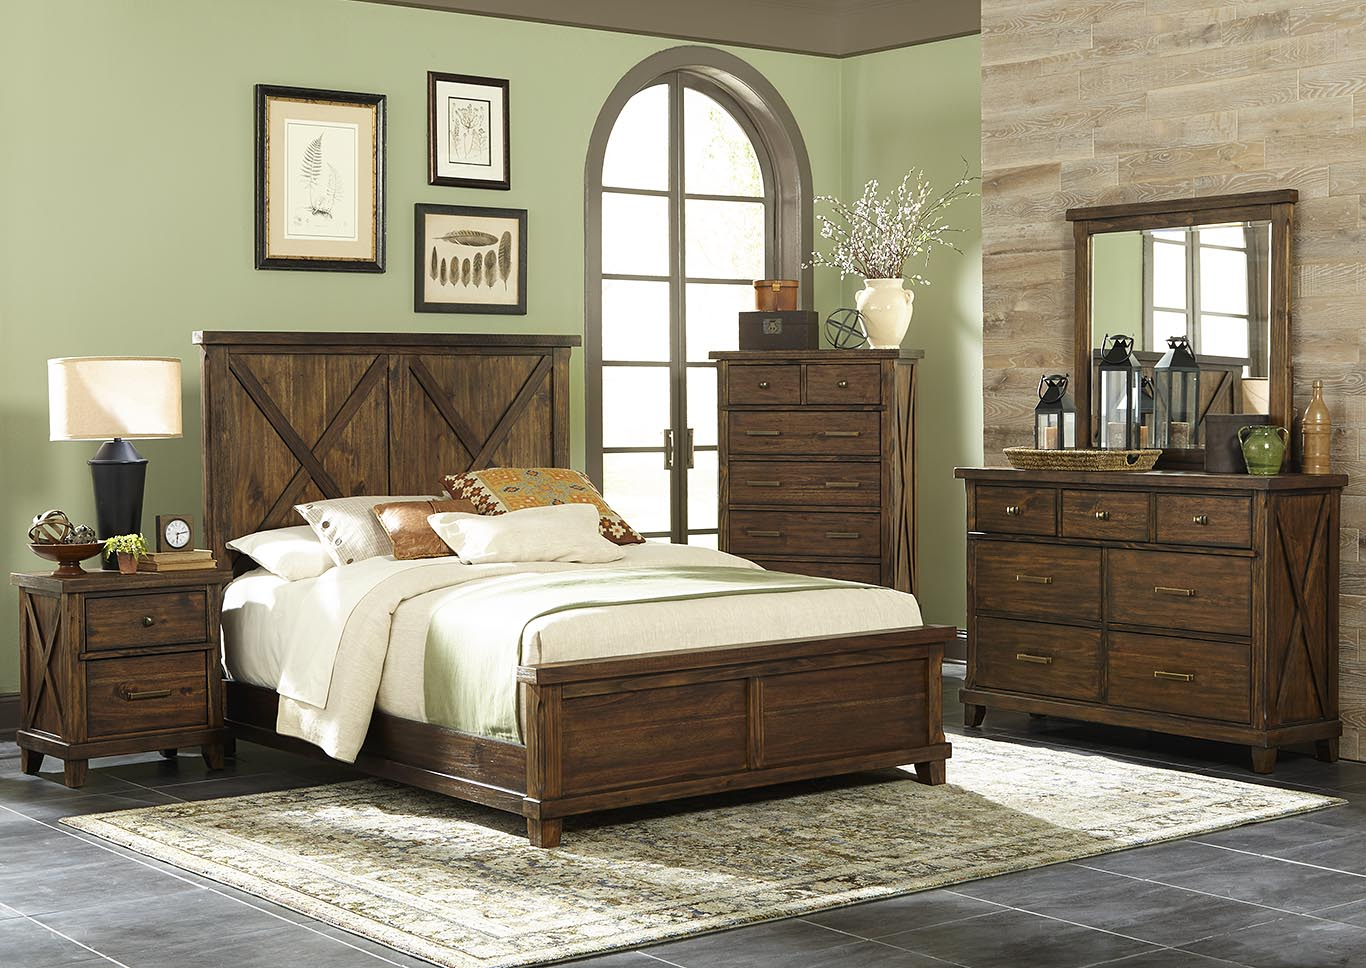 Hacienda Toffee Queen Headboard,Kith